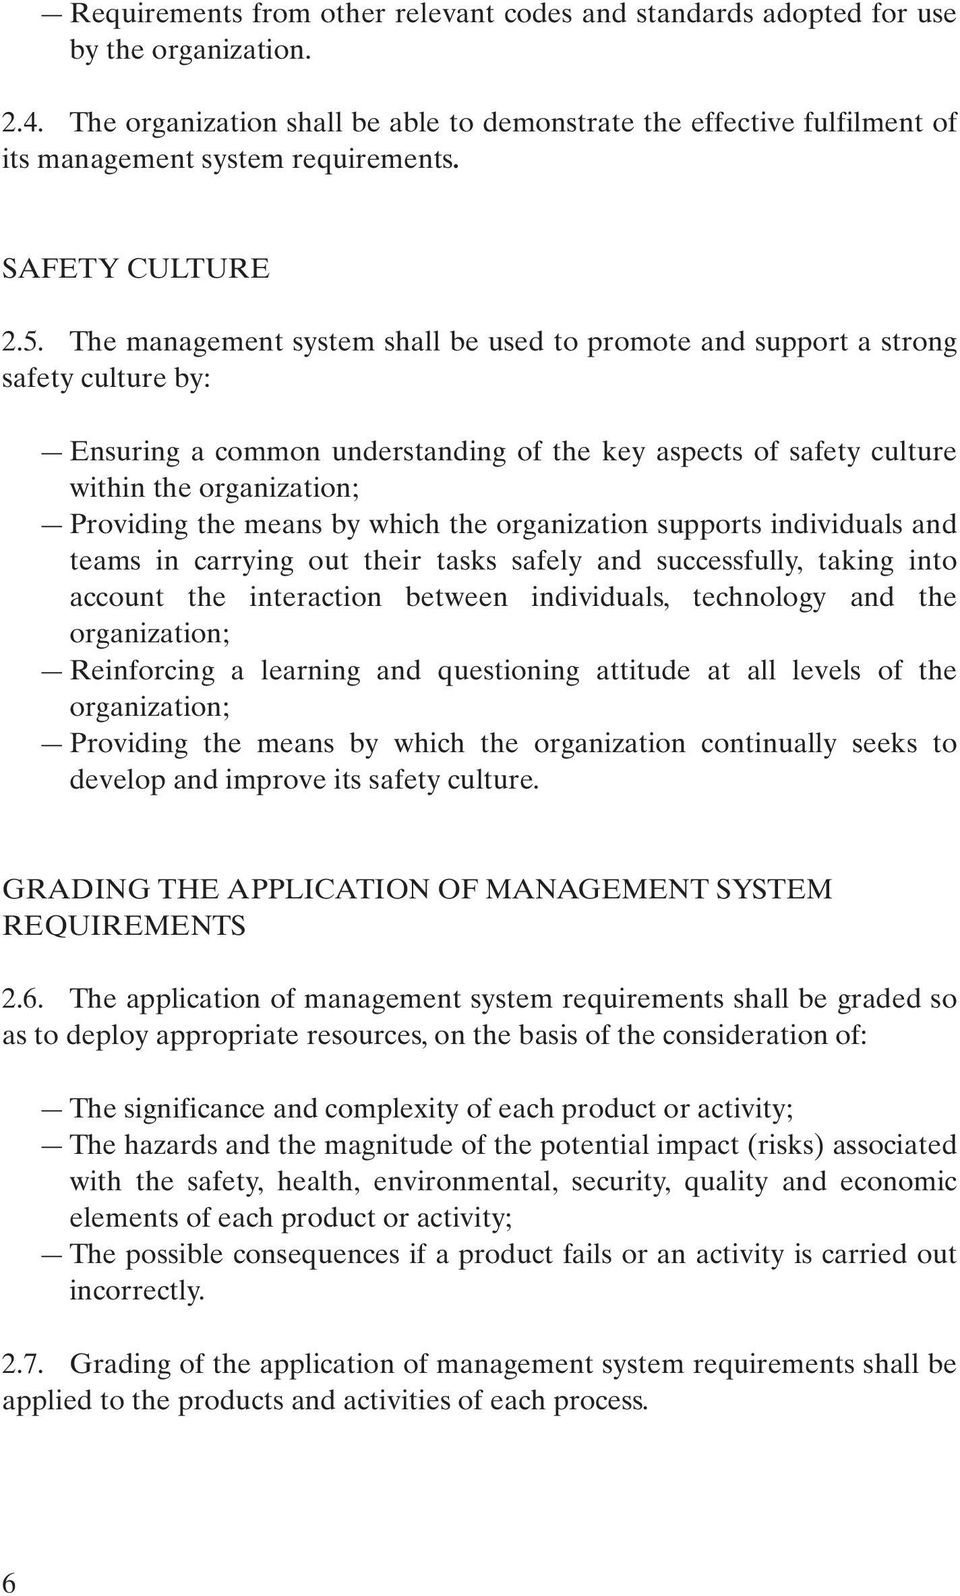 The management system shall be used to promote and support a strong safety culture by: Ensuring a common understanding of the key aspects of safety culture within the organization; Providing the